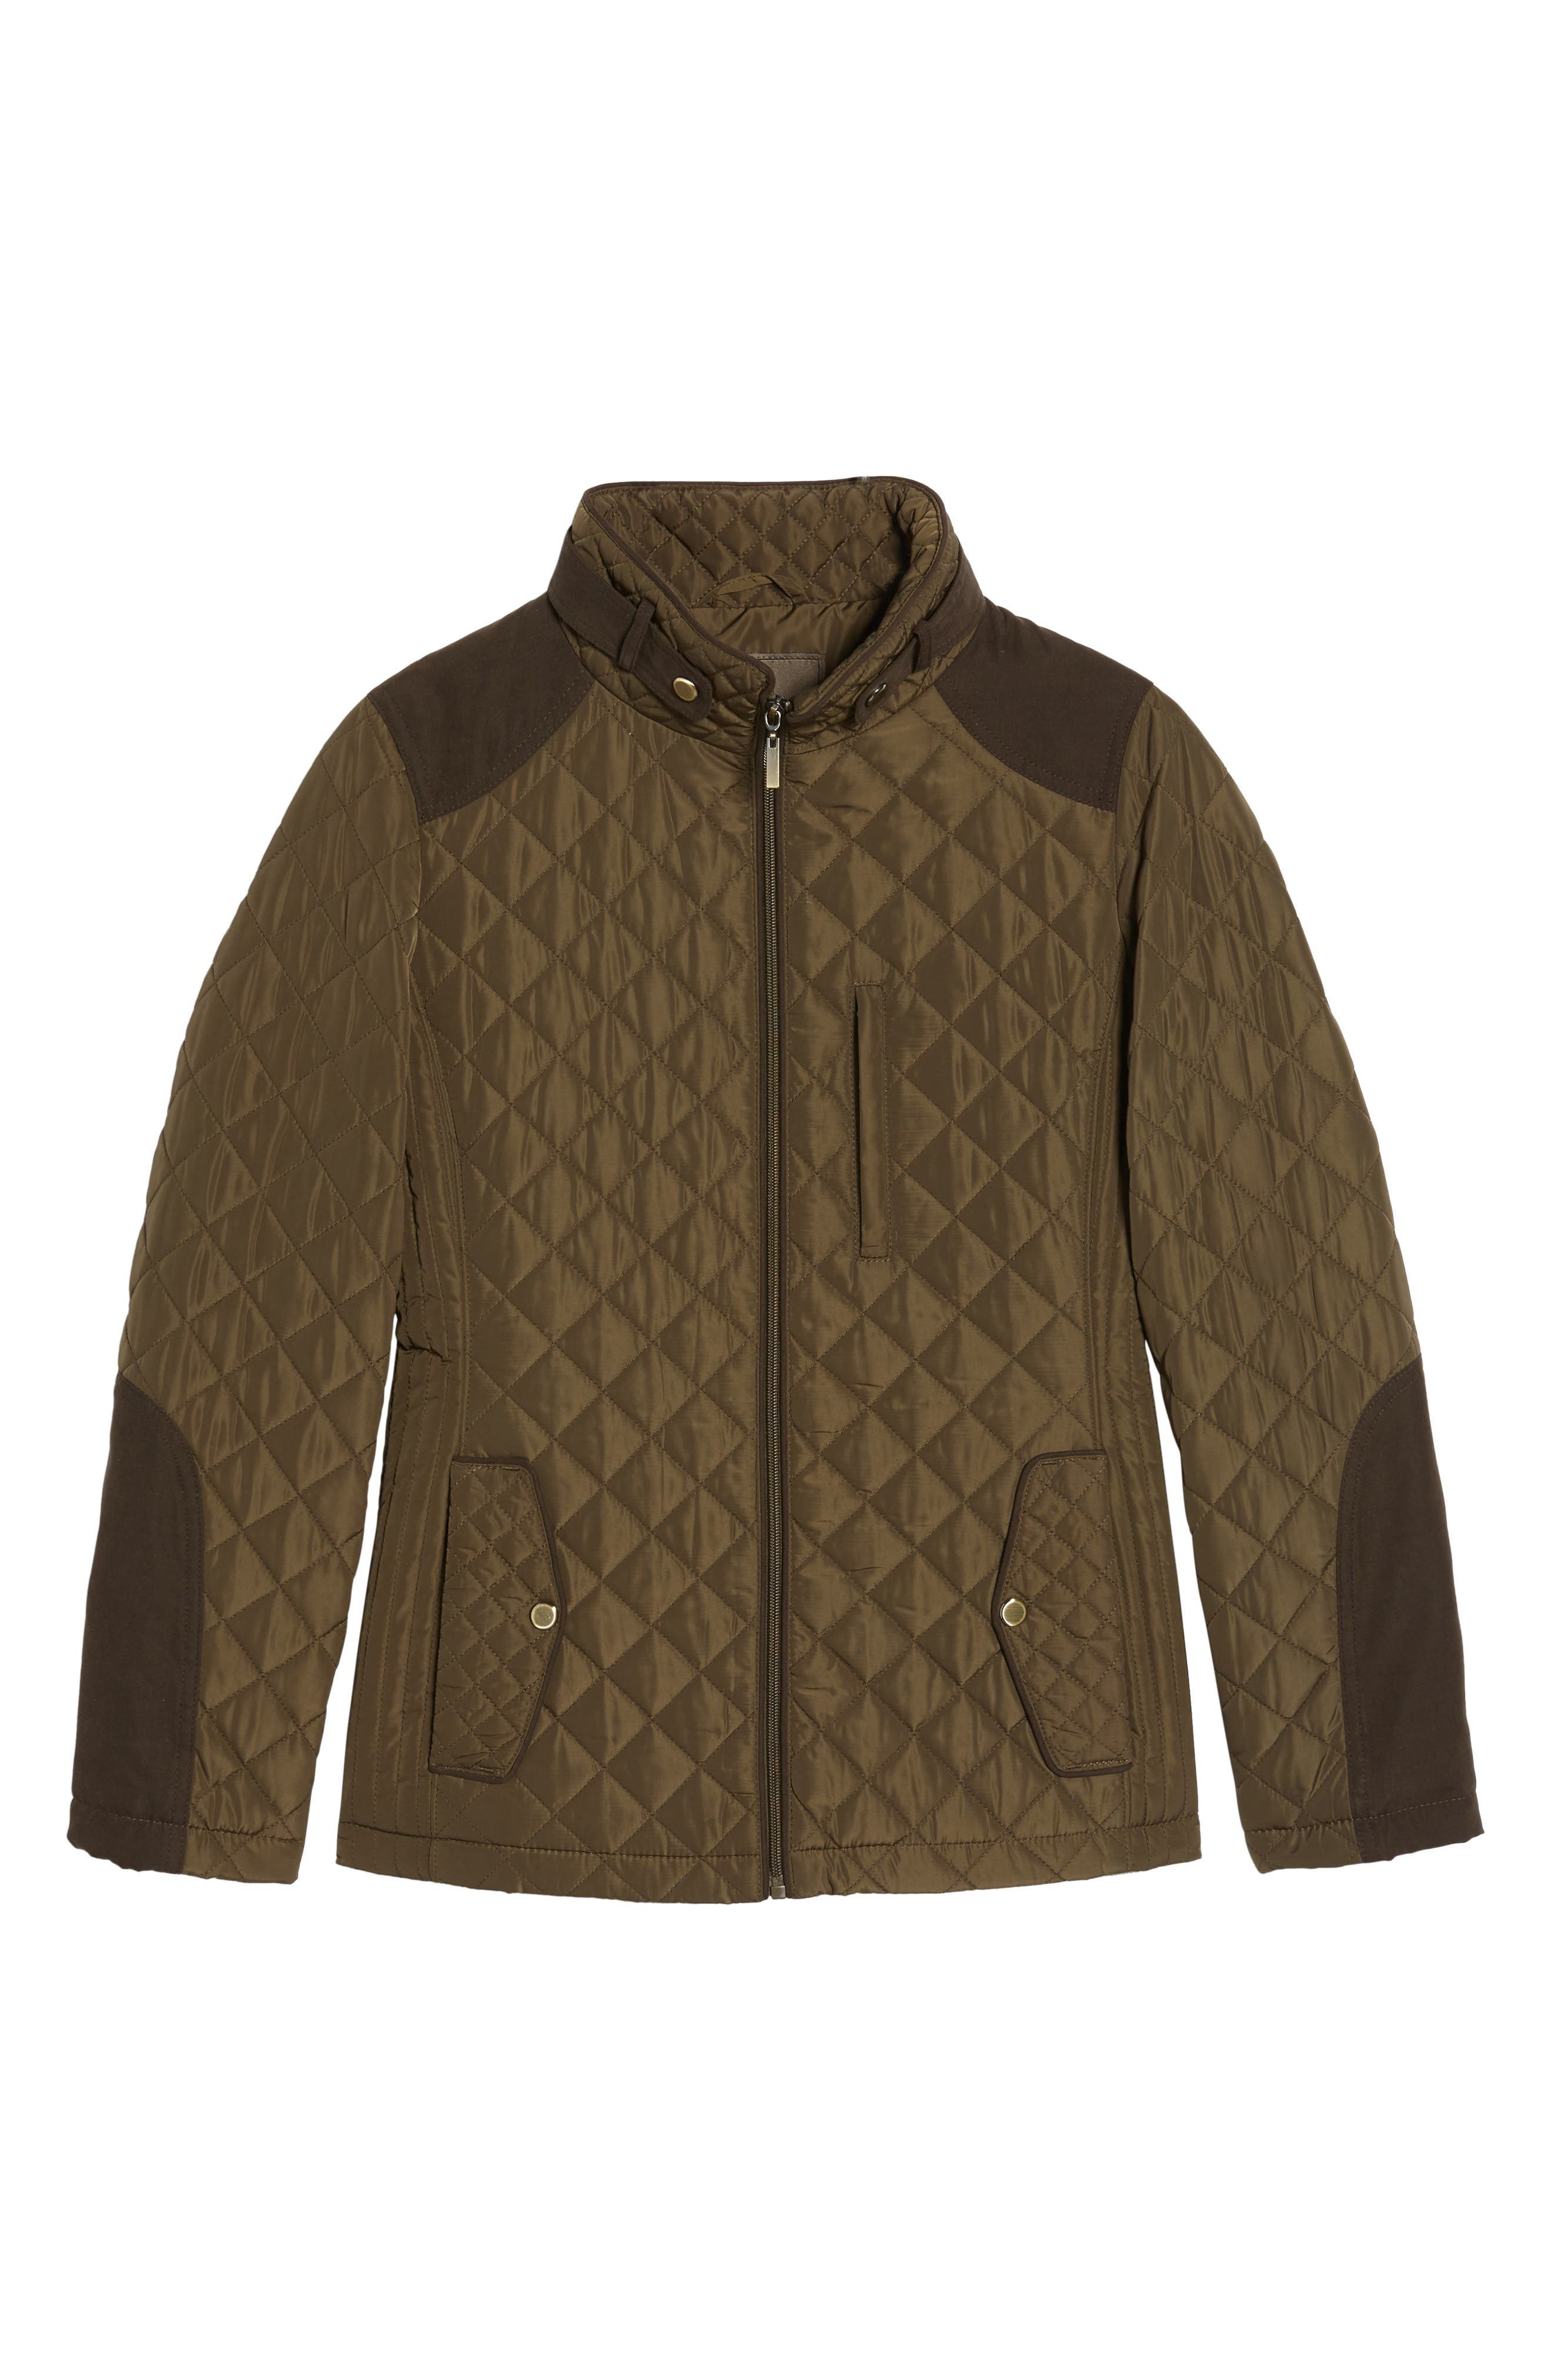 Insulated Jacket,                             Alternate thumbnail 6, color,                             Fatigue